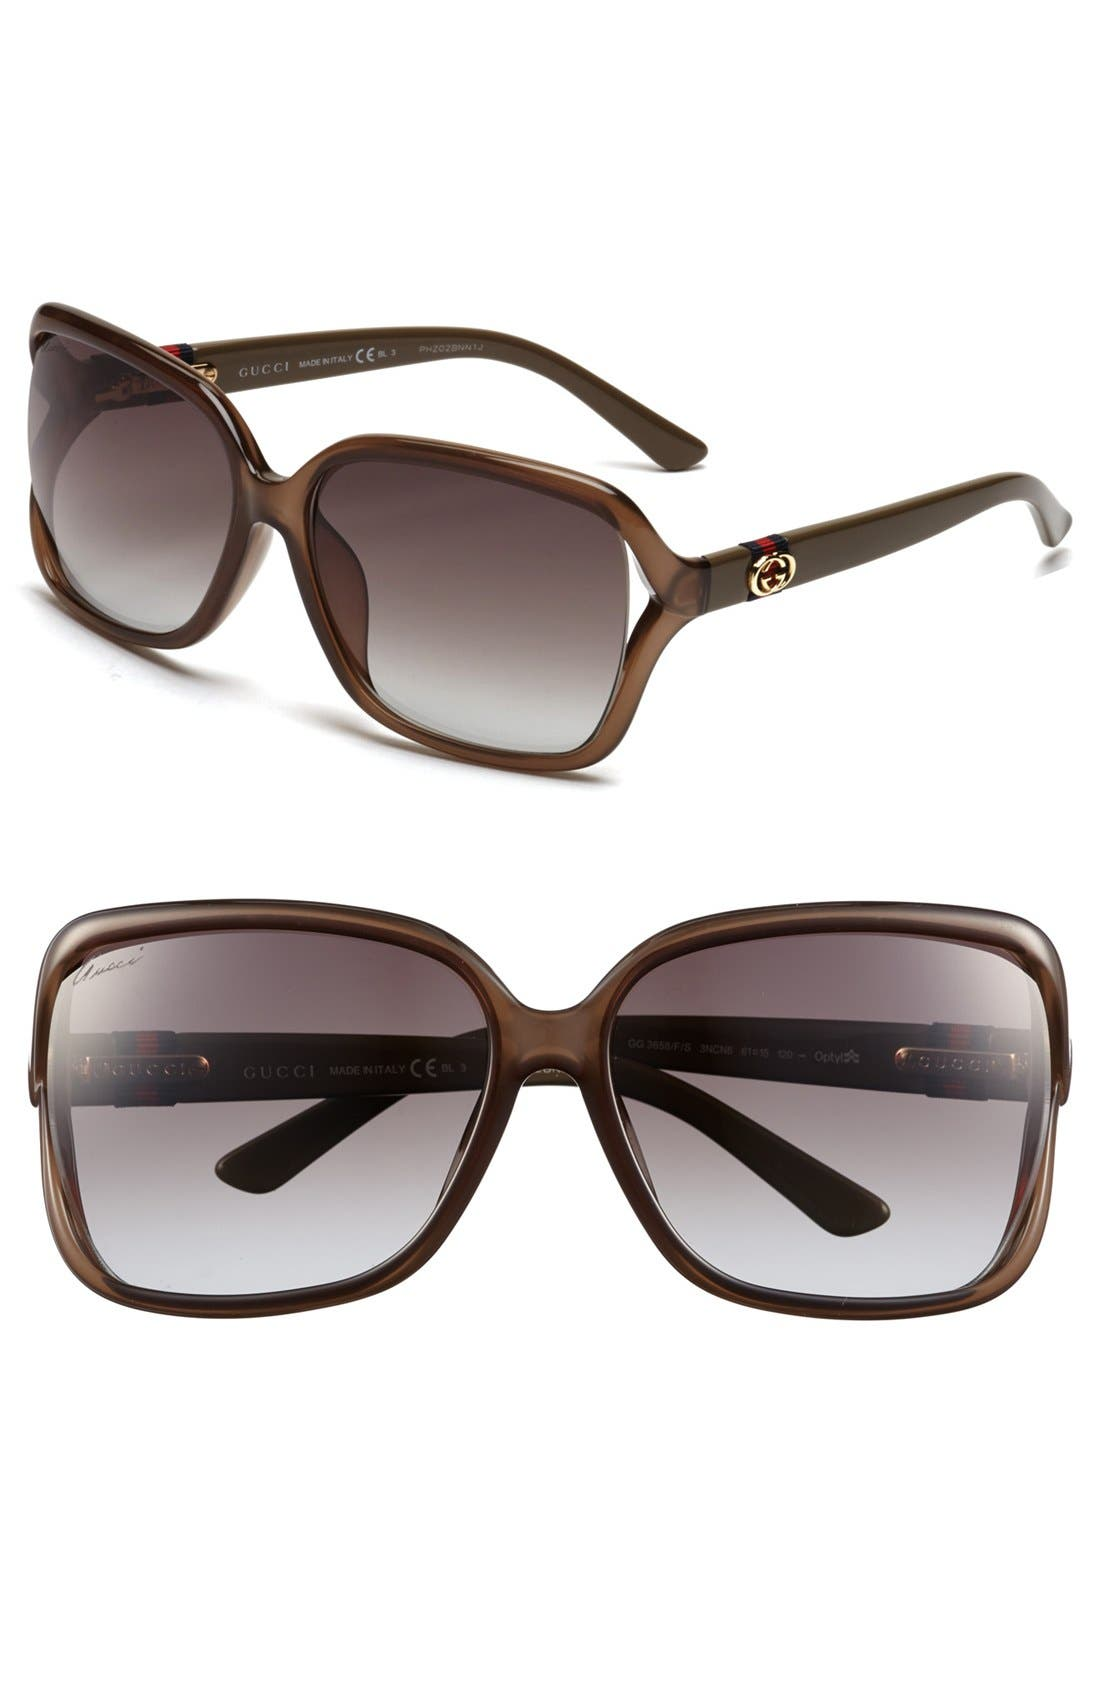 Main Image - Gucci 61mm Special Fit Sunglasses